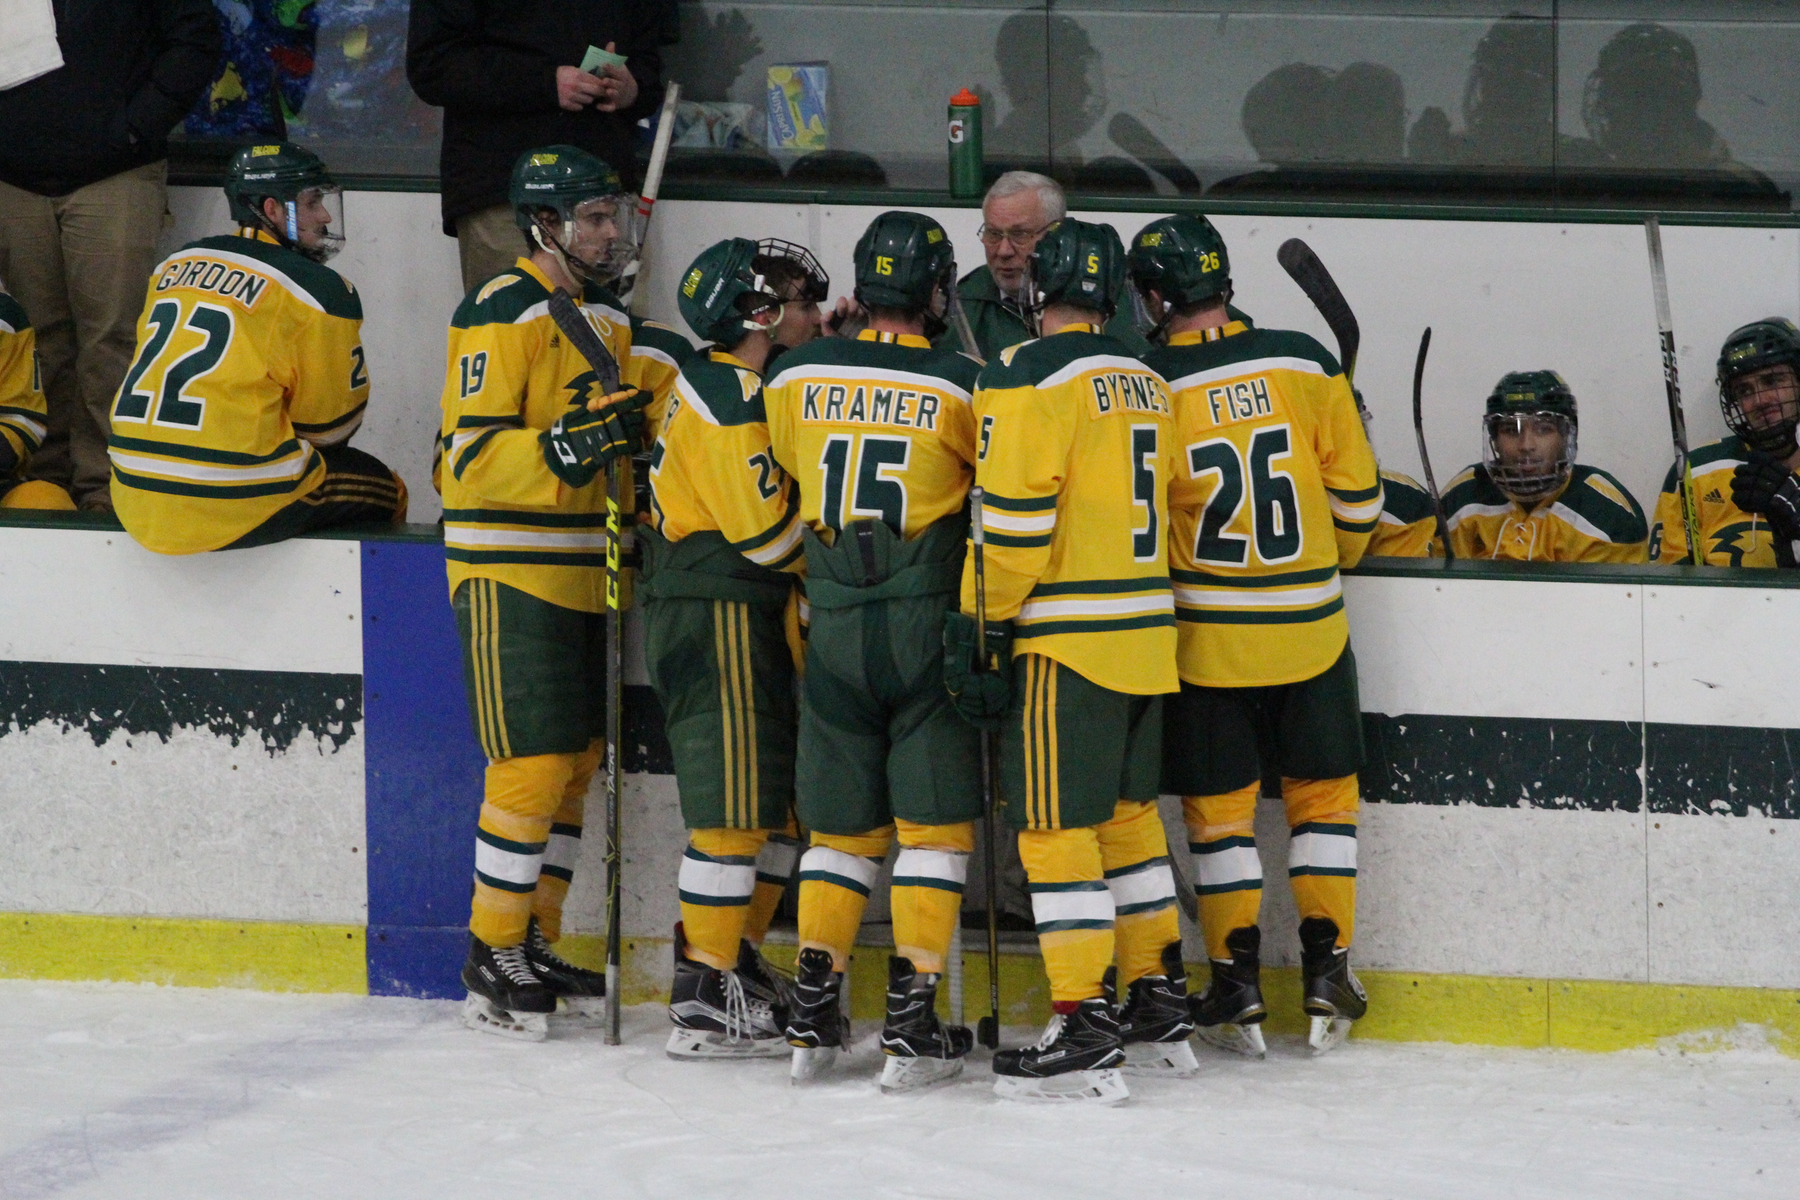 Fitchburg State Blanked By Neumann, 6-0